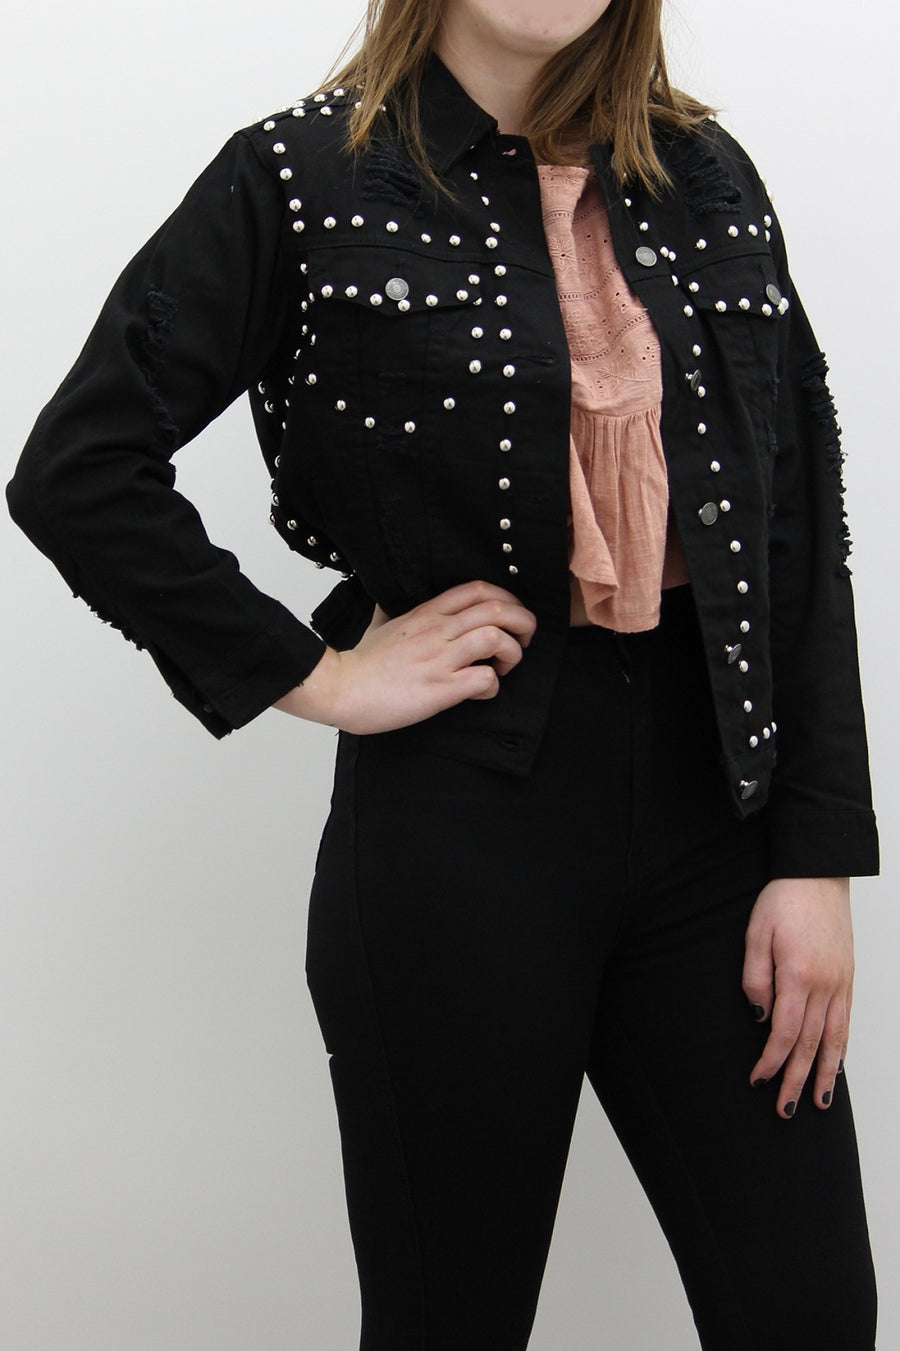 Black Denim Silver Stud Jacket - Ryan - storm desire